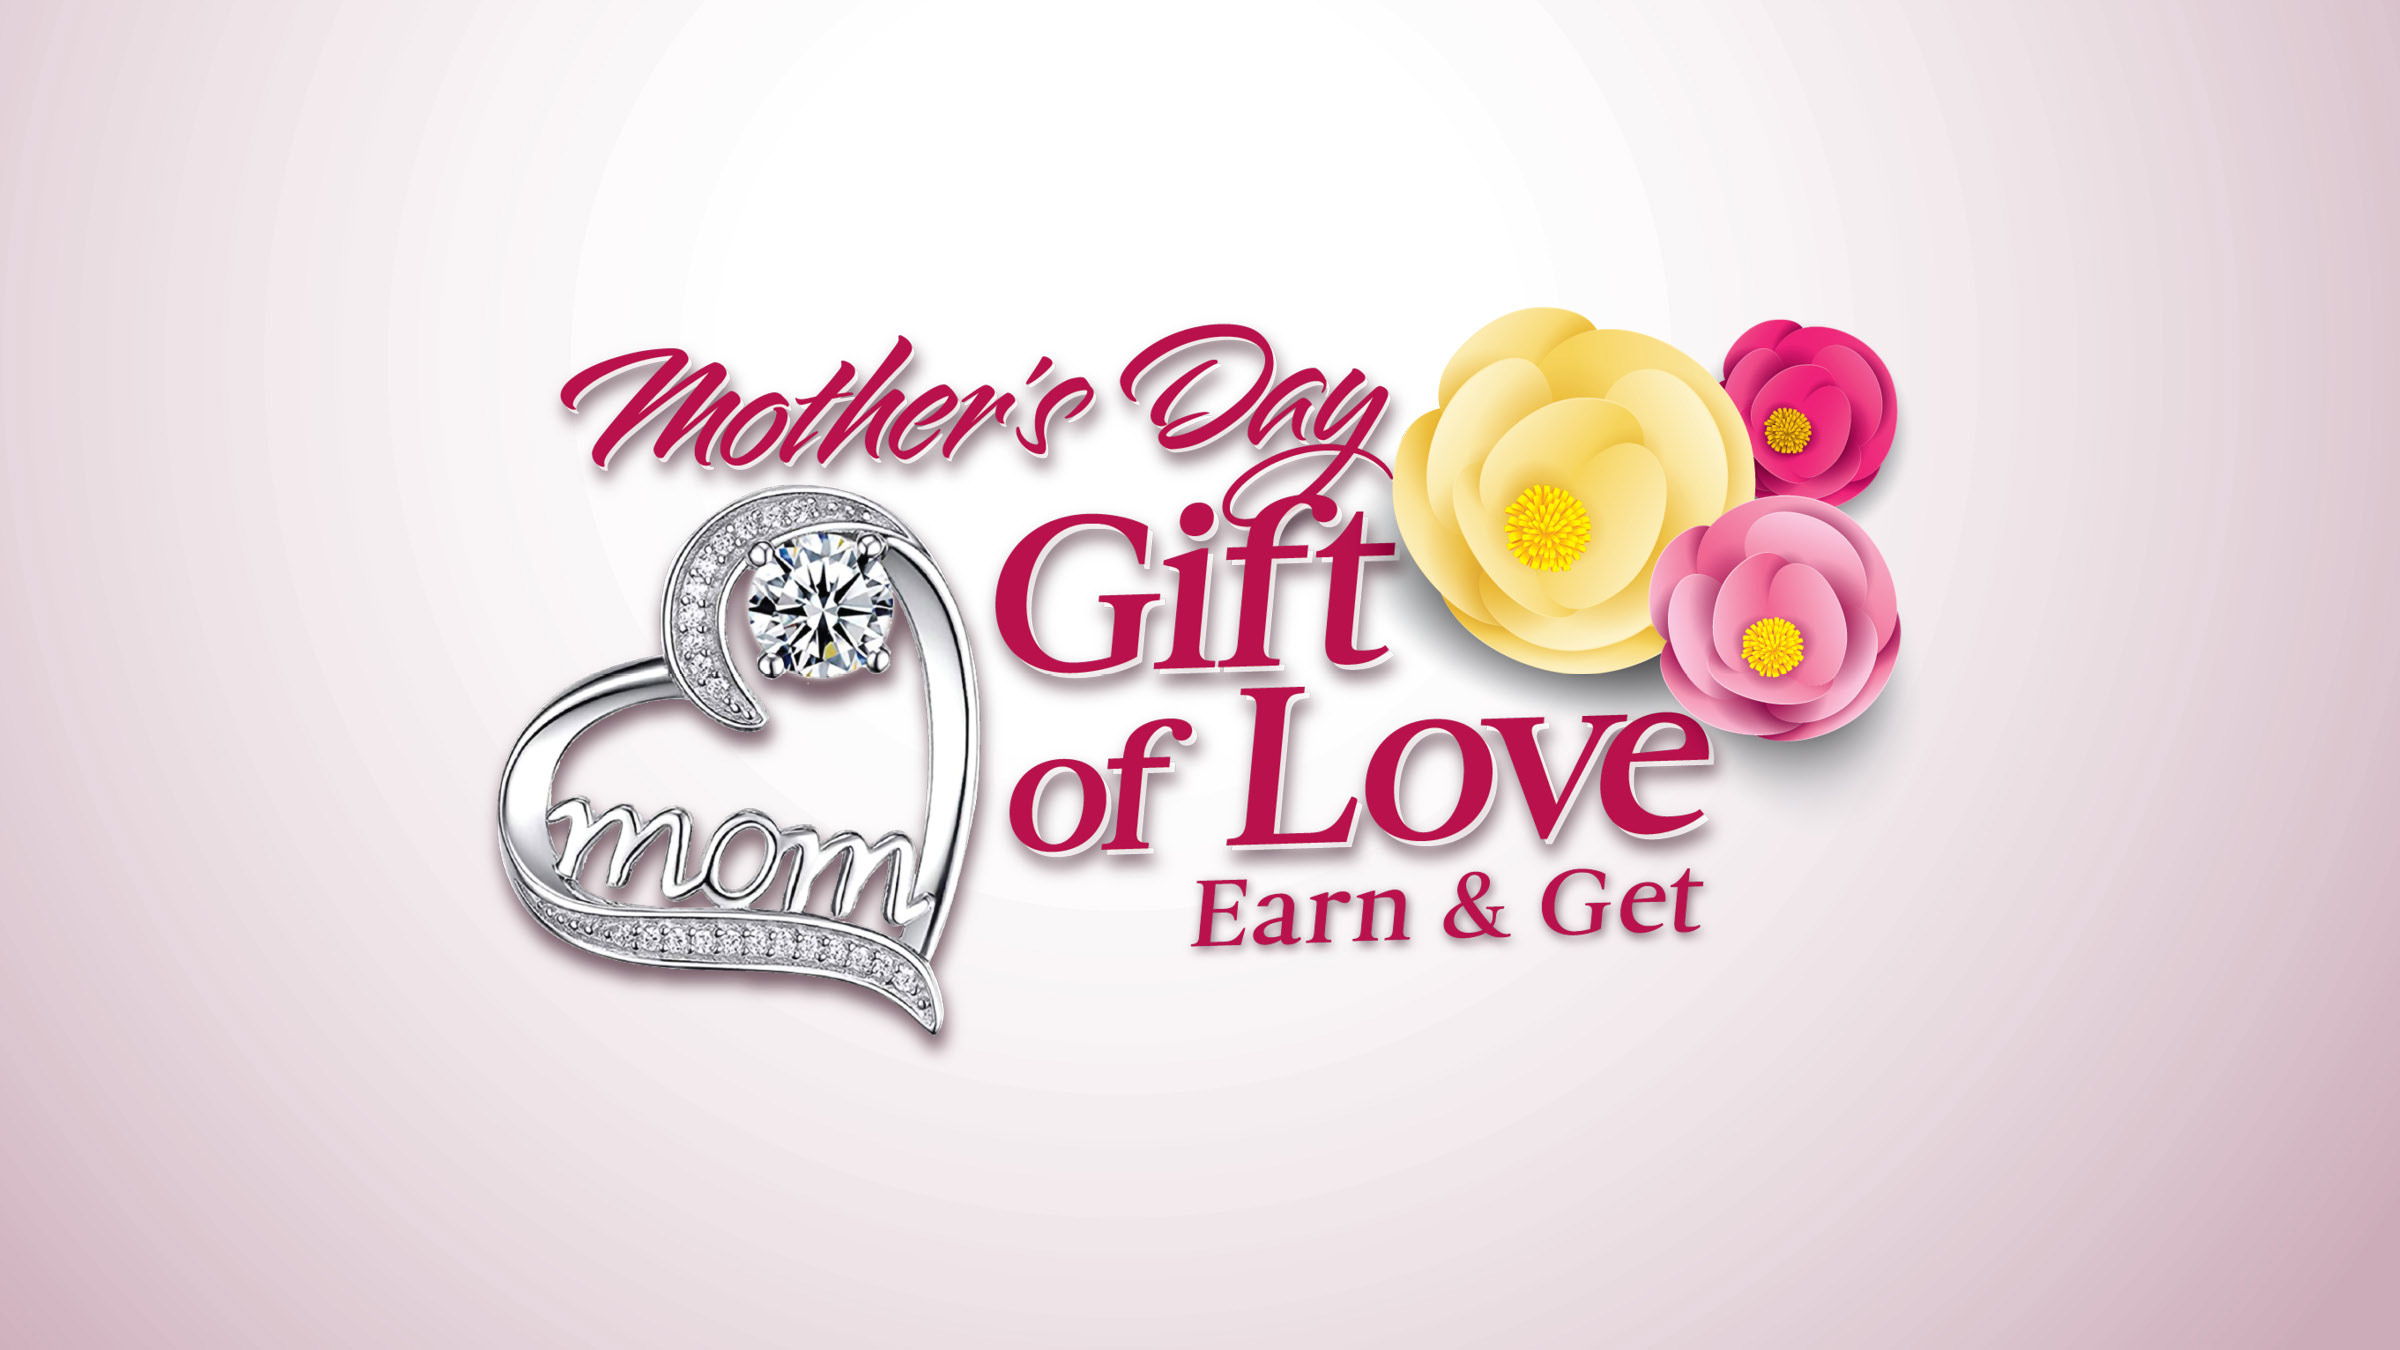 Mother's Day Gift of Love Earn & Get